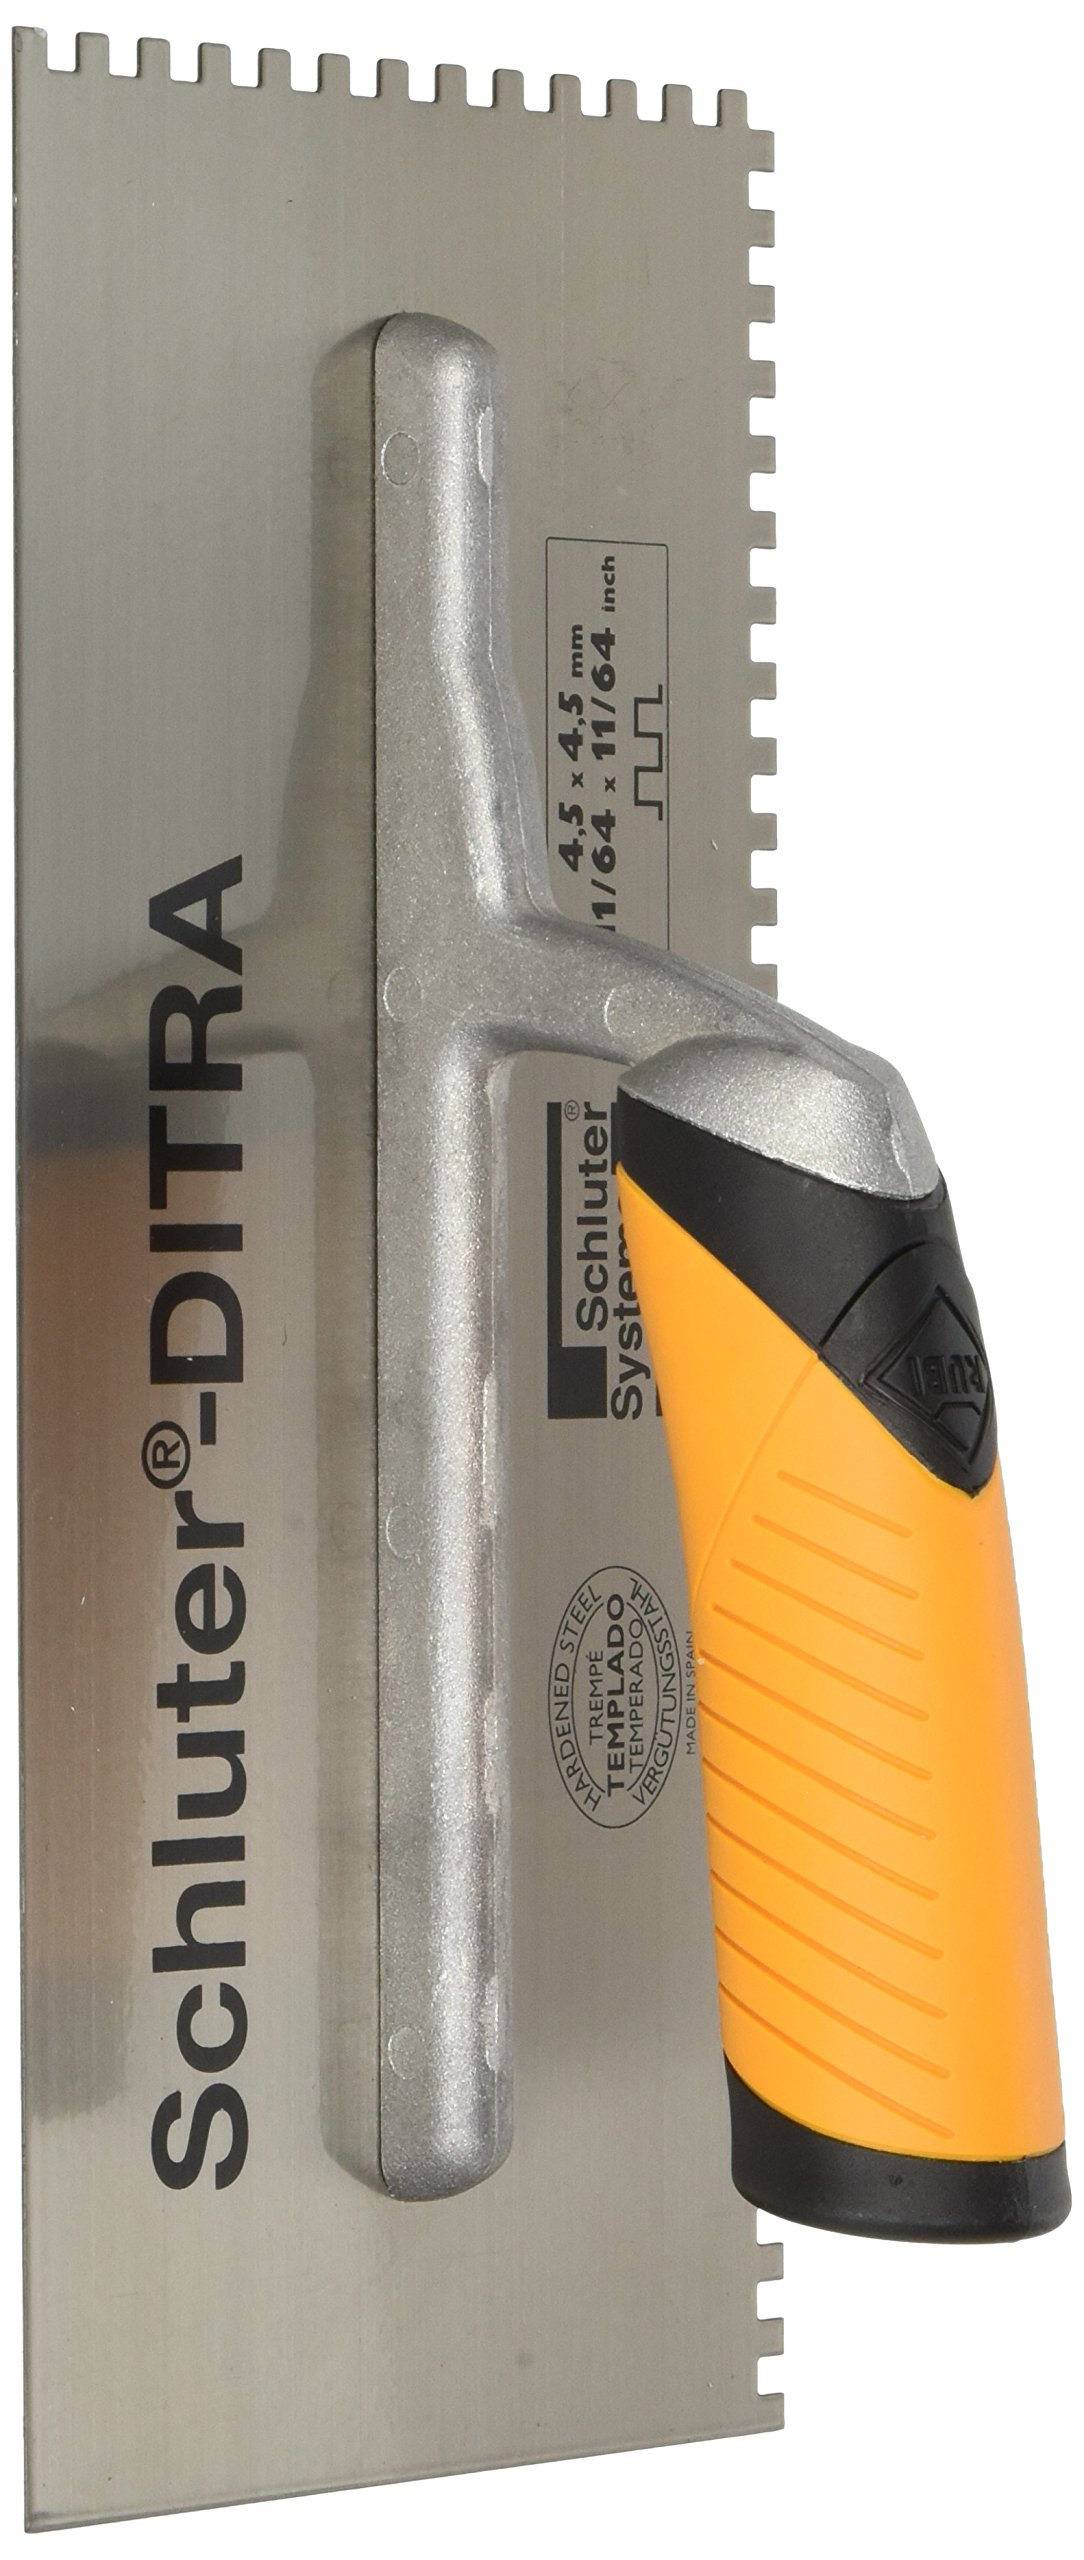 SCHLUTER DITRA TROWEL - 11/64 X 11/64 SQUARE NOTCH by Schluter Systems